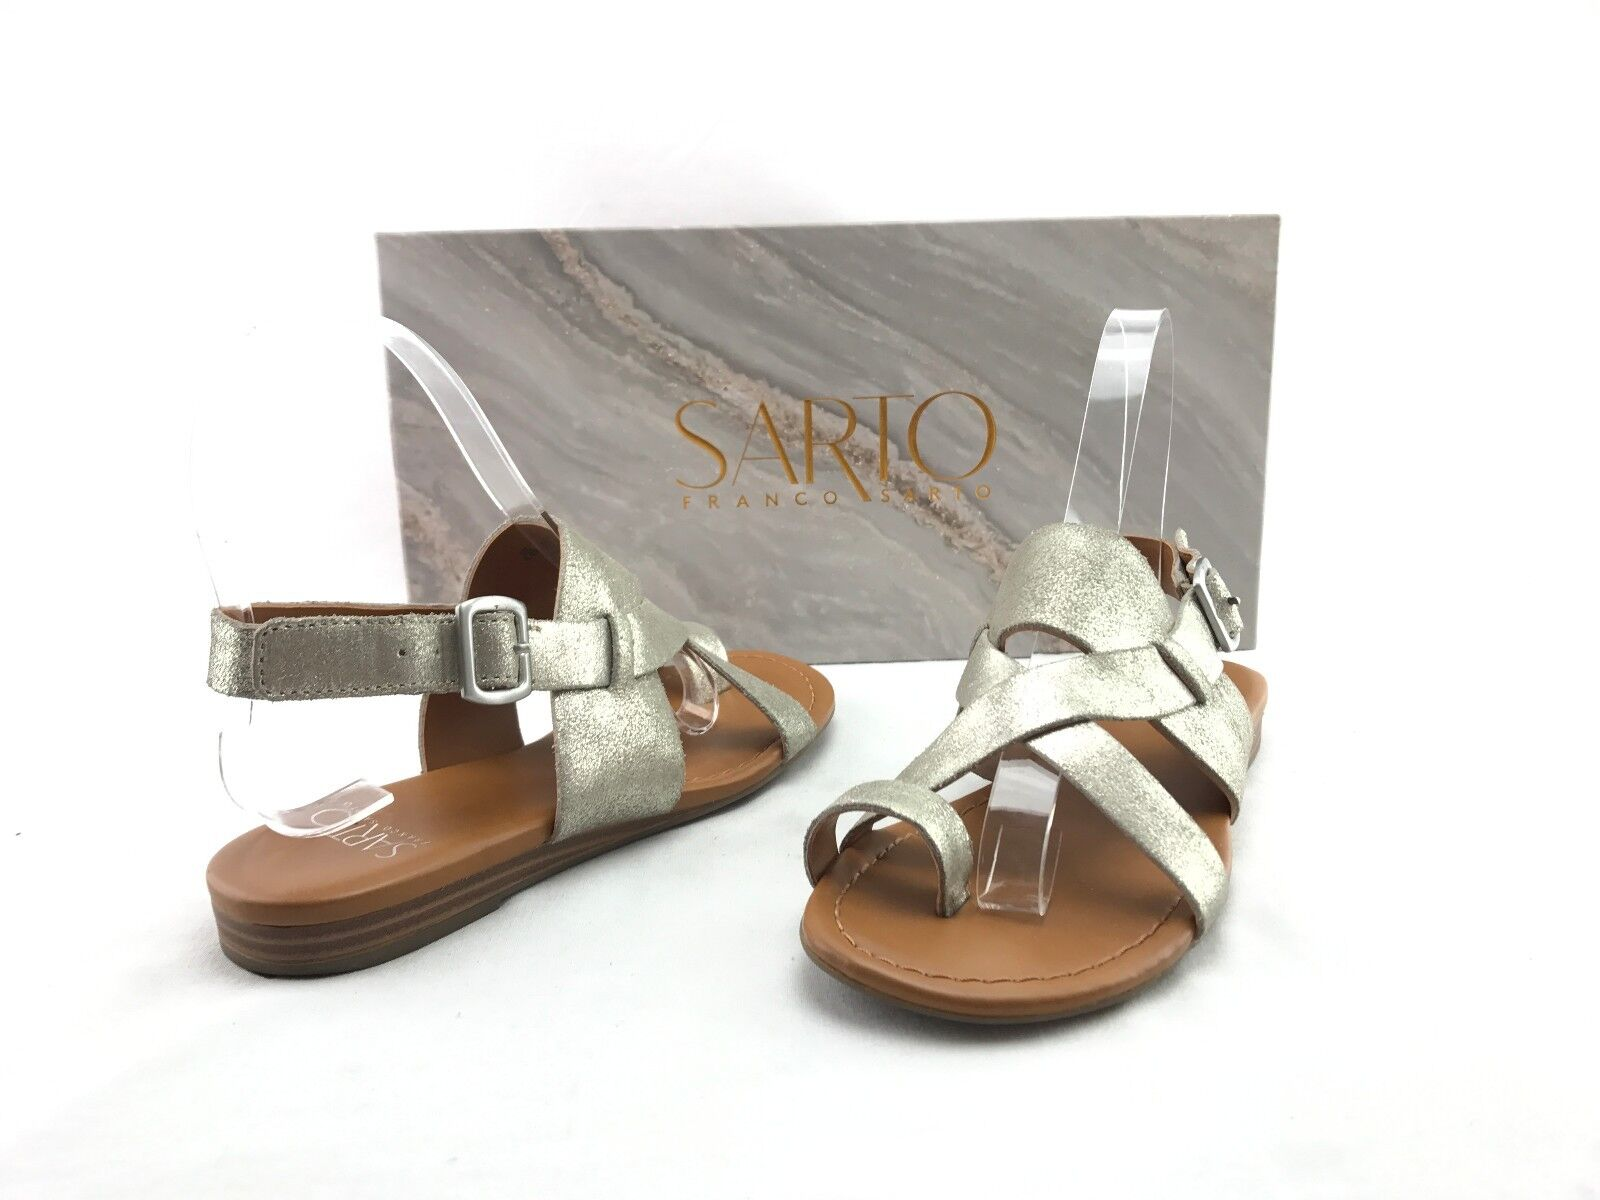 Franco Sarto Gia Women's Silver Strap Leather Sandals US Size 4.5 M shoes  A283